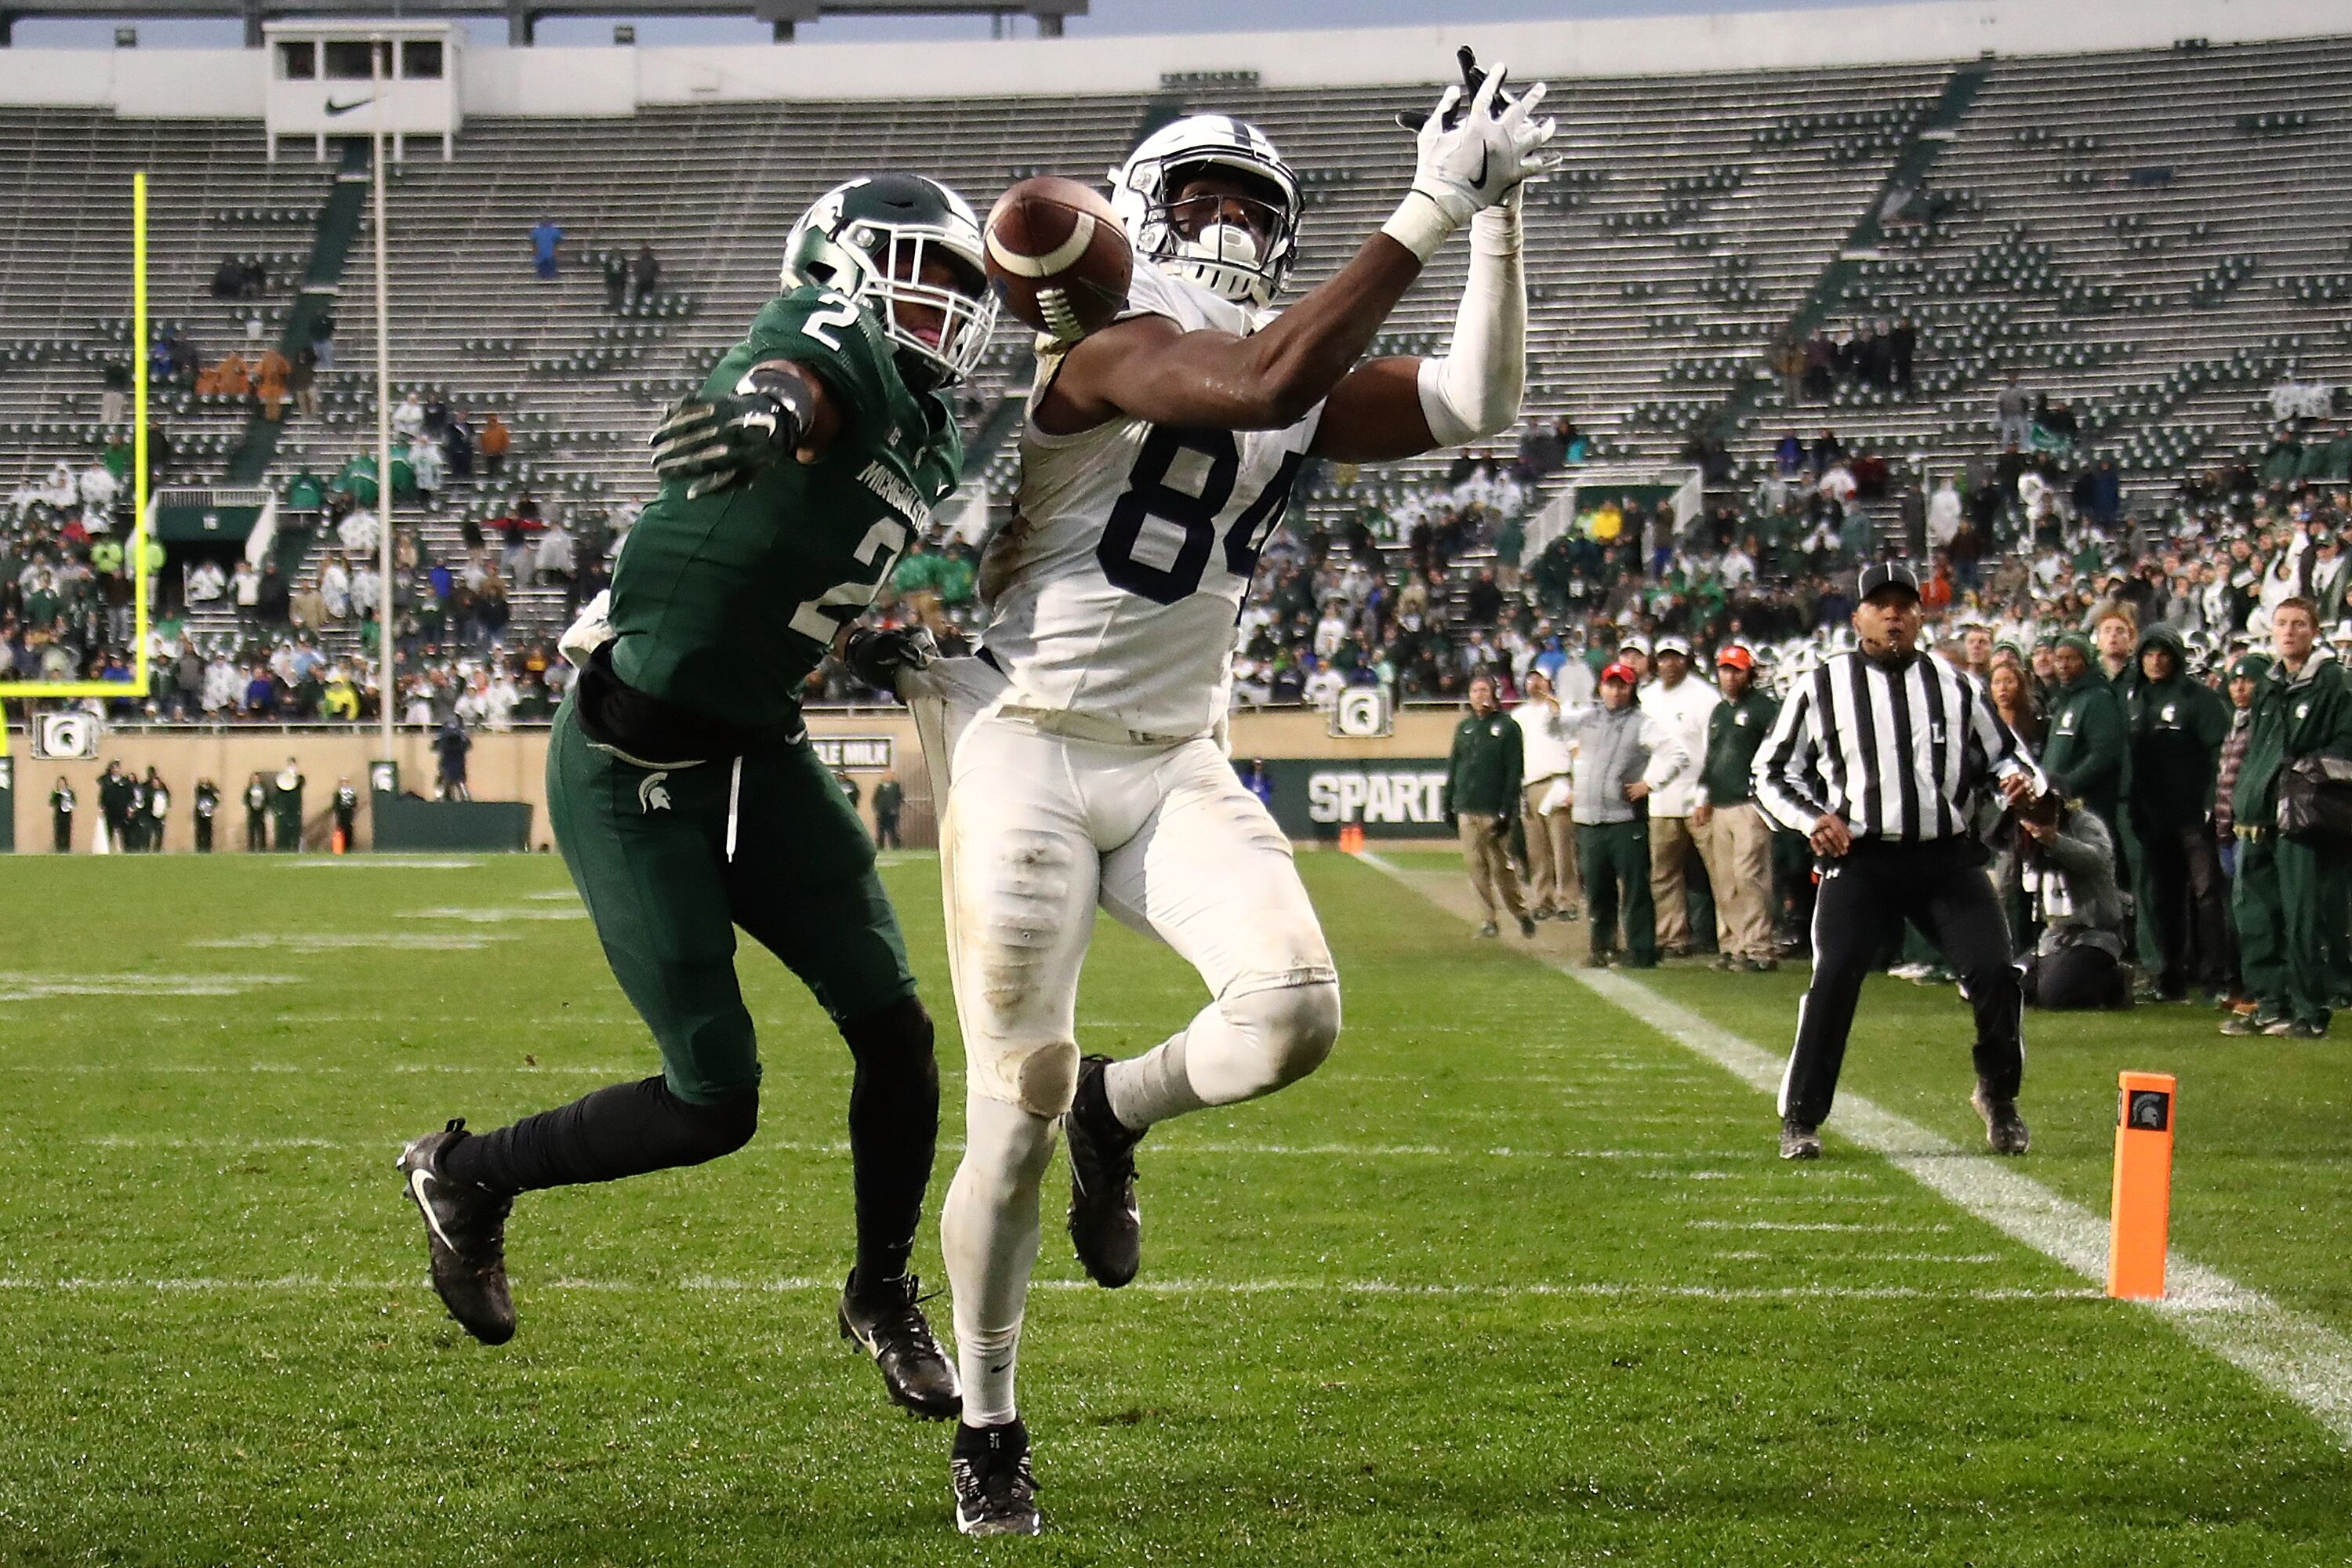 EAST LANSING, MI - NOVEMBER 04: Juwan Johnson #84 of the Penn State Nittany Lions can't make a second half catch next to Justin Layne #2 of the Michigan State Spartans at Spartan Stadium on November 4, 2017 in East Lansing, Michigan. Michigan State won the game 27-24.(Photo by Gregory Shamus/Getty Images)